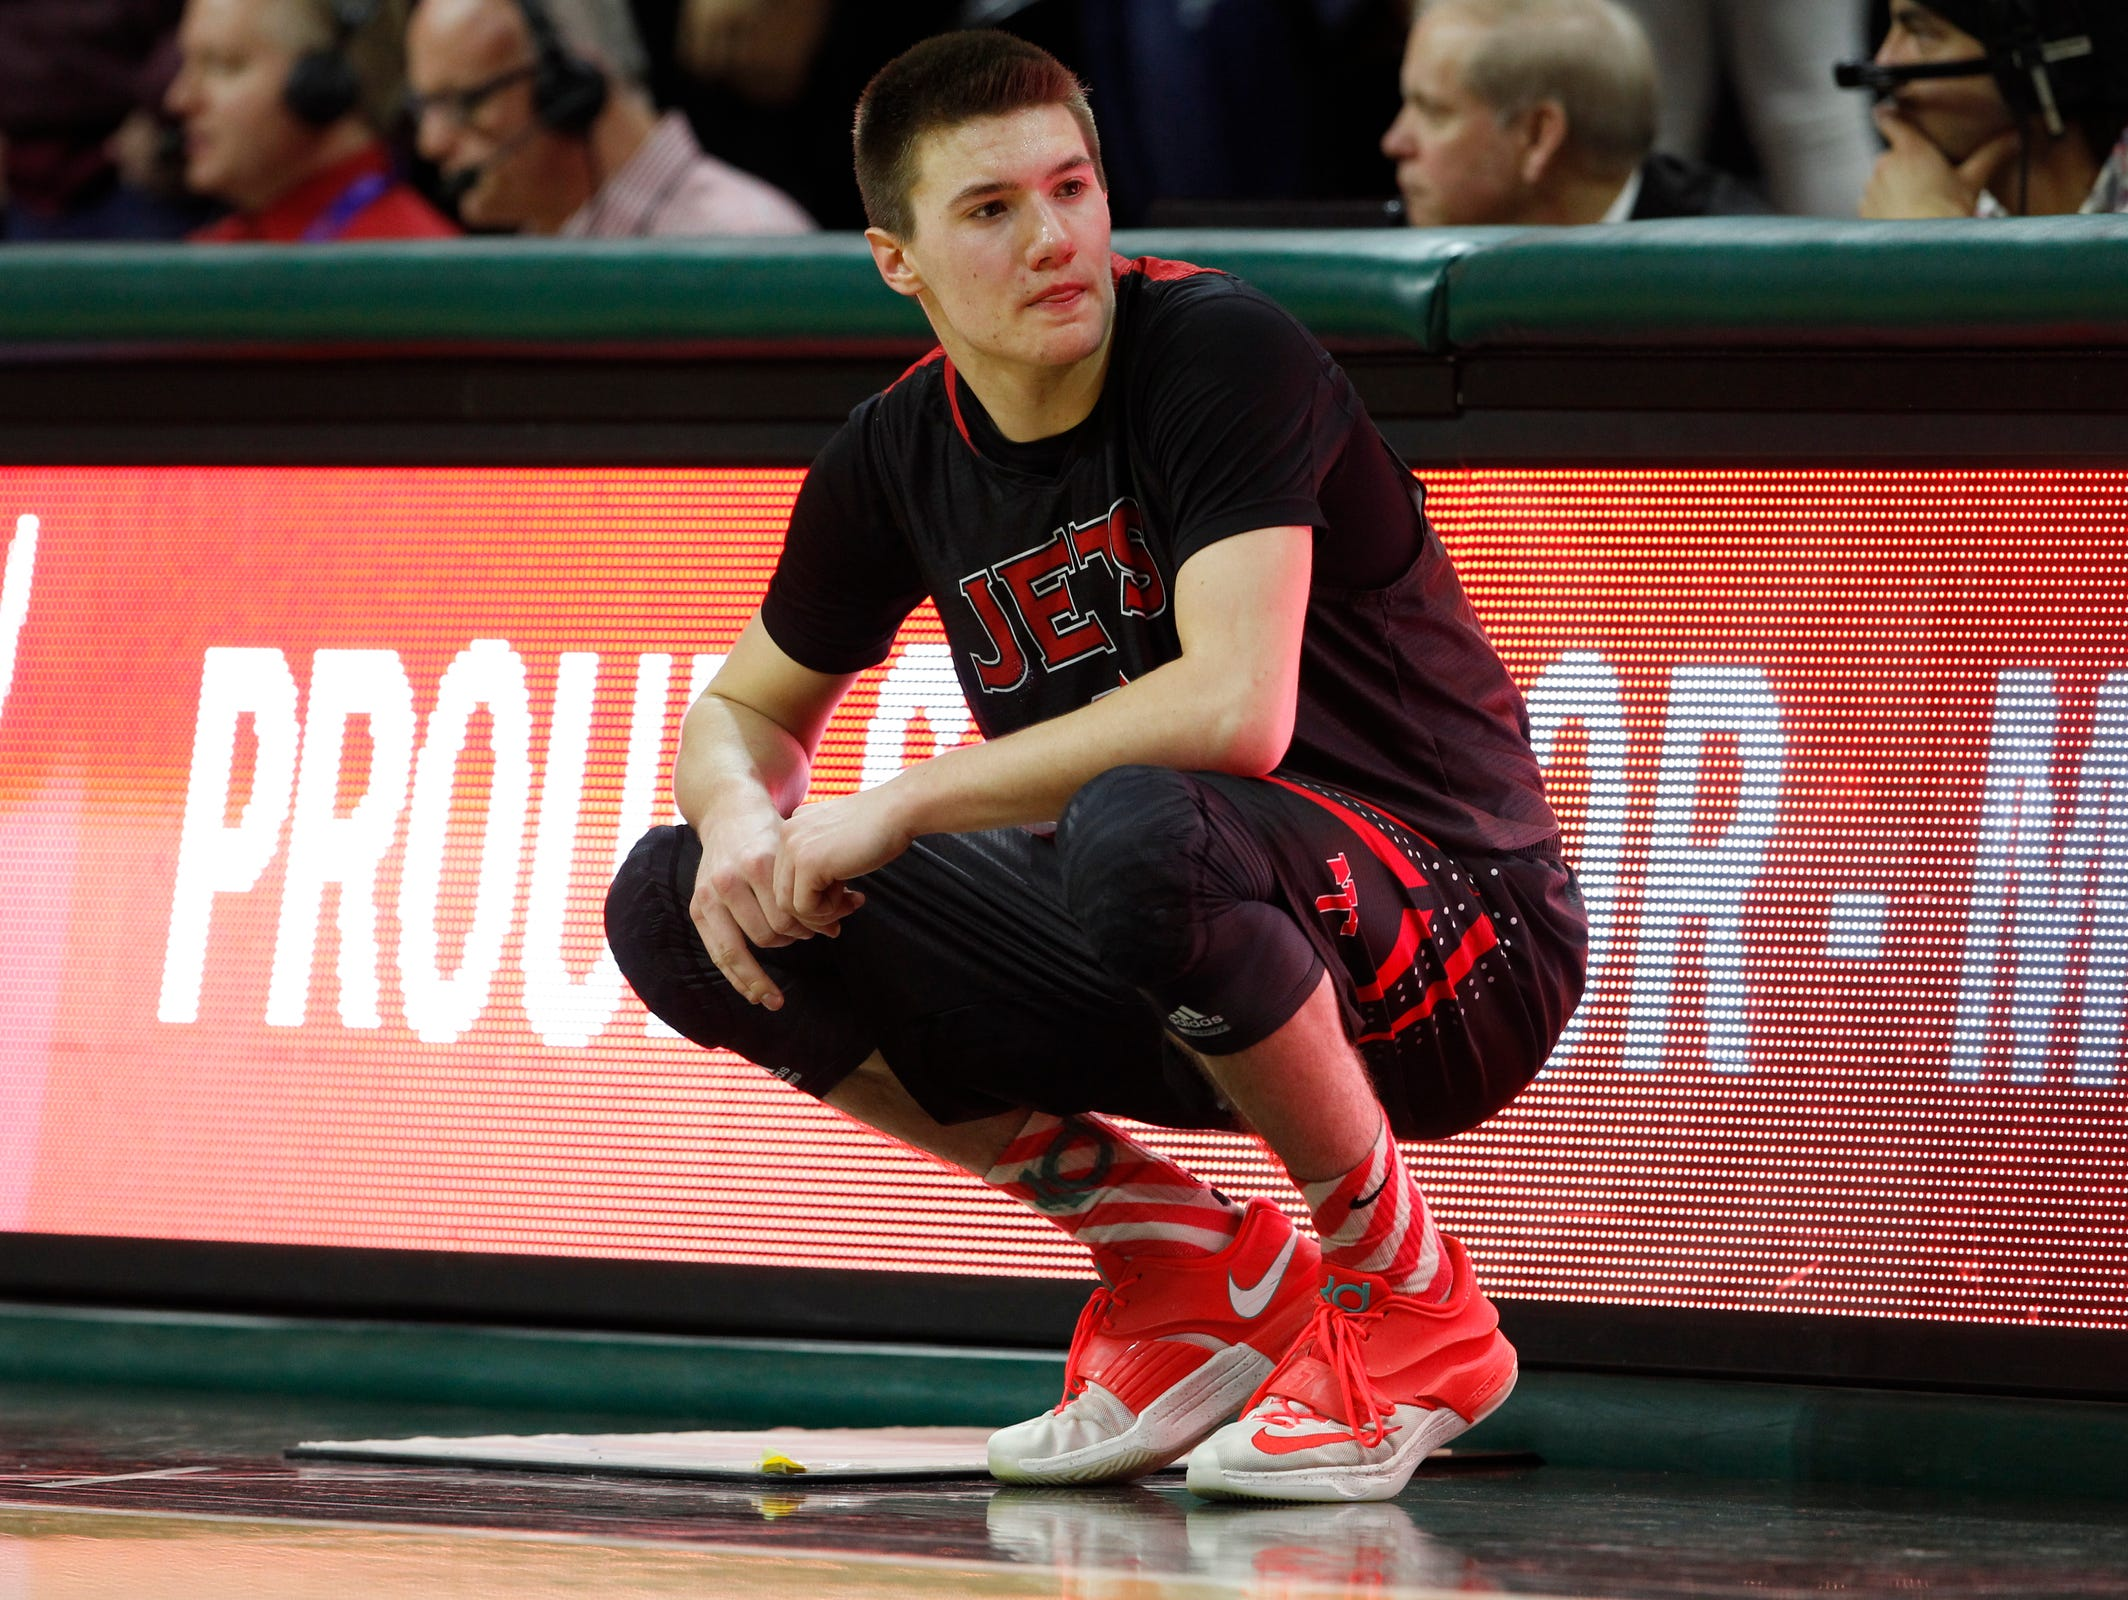 Powers North Central's Jason Whitens waiting to come in on last time in the second half of their 67-47 win over Morenci in the MHSAA boys basketball Class D finals March 28, 2015 in East Lansing.